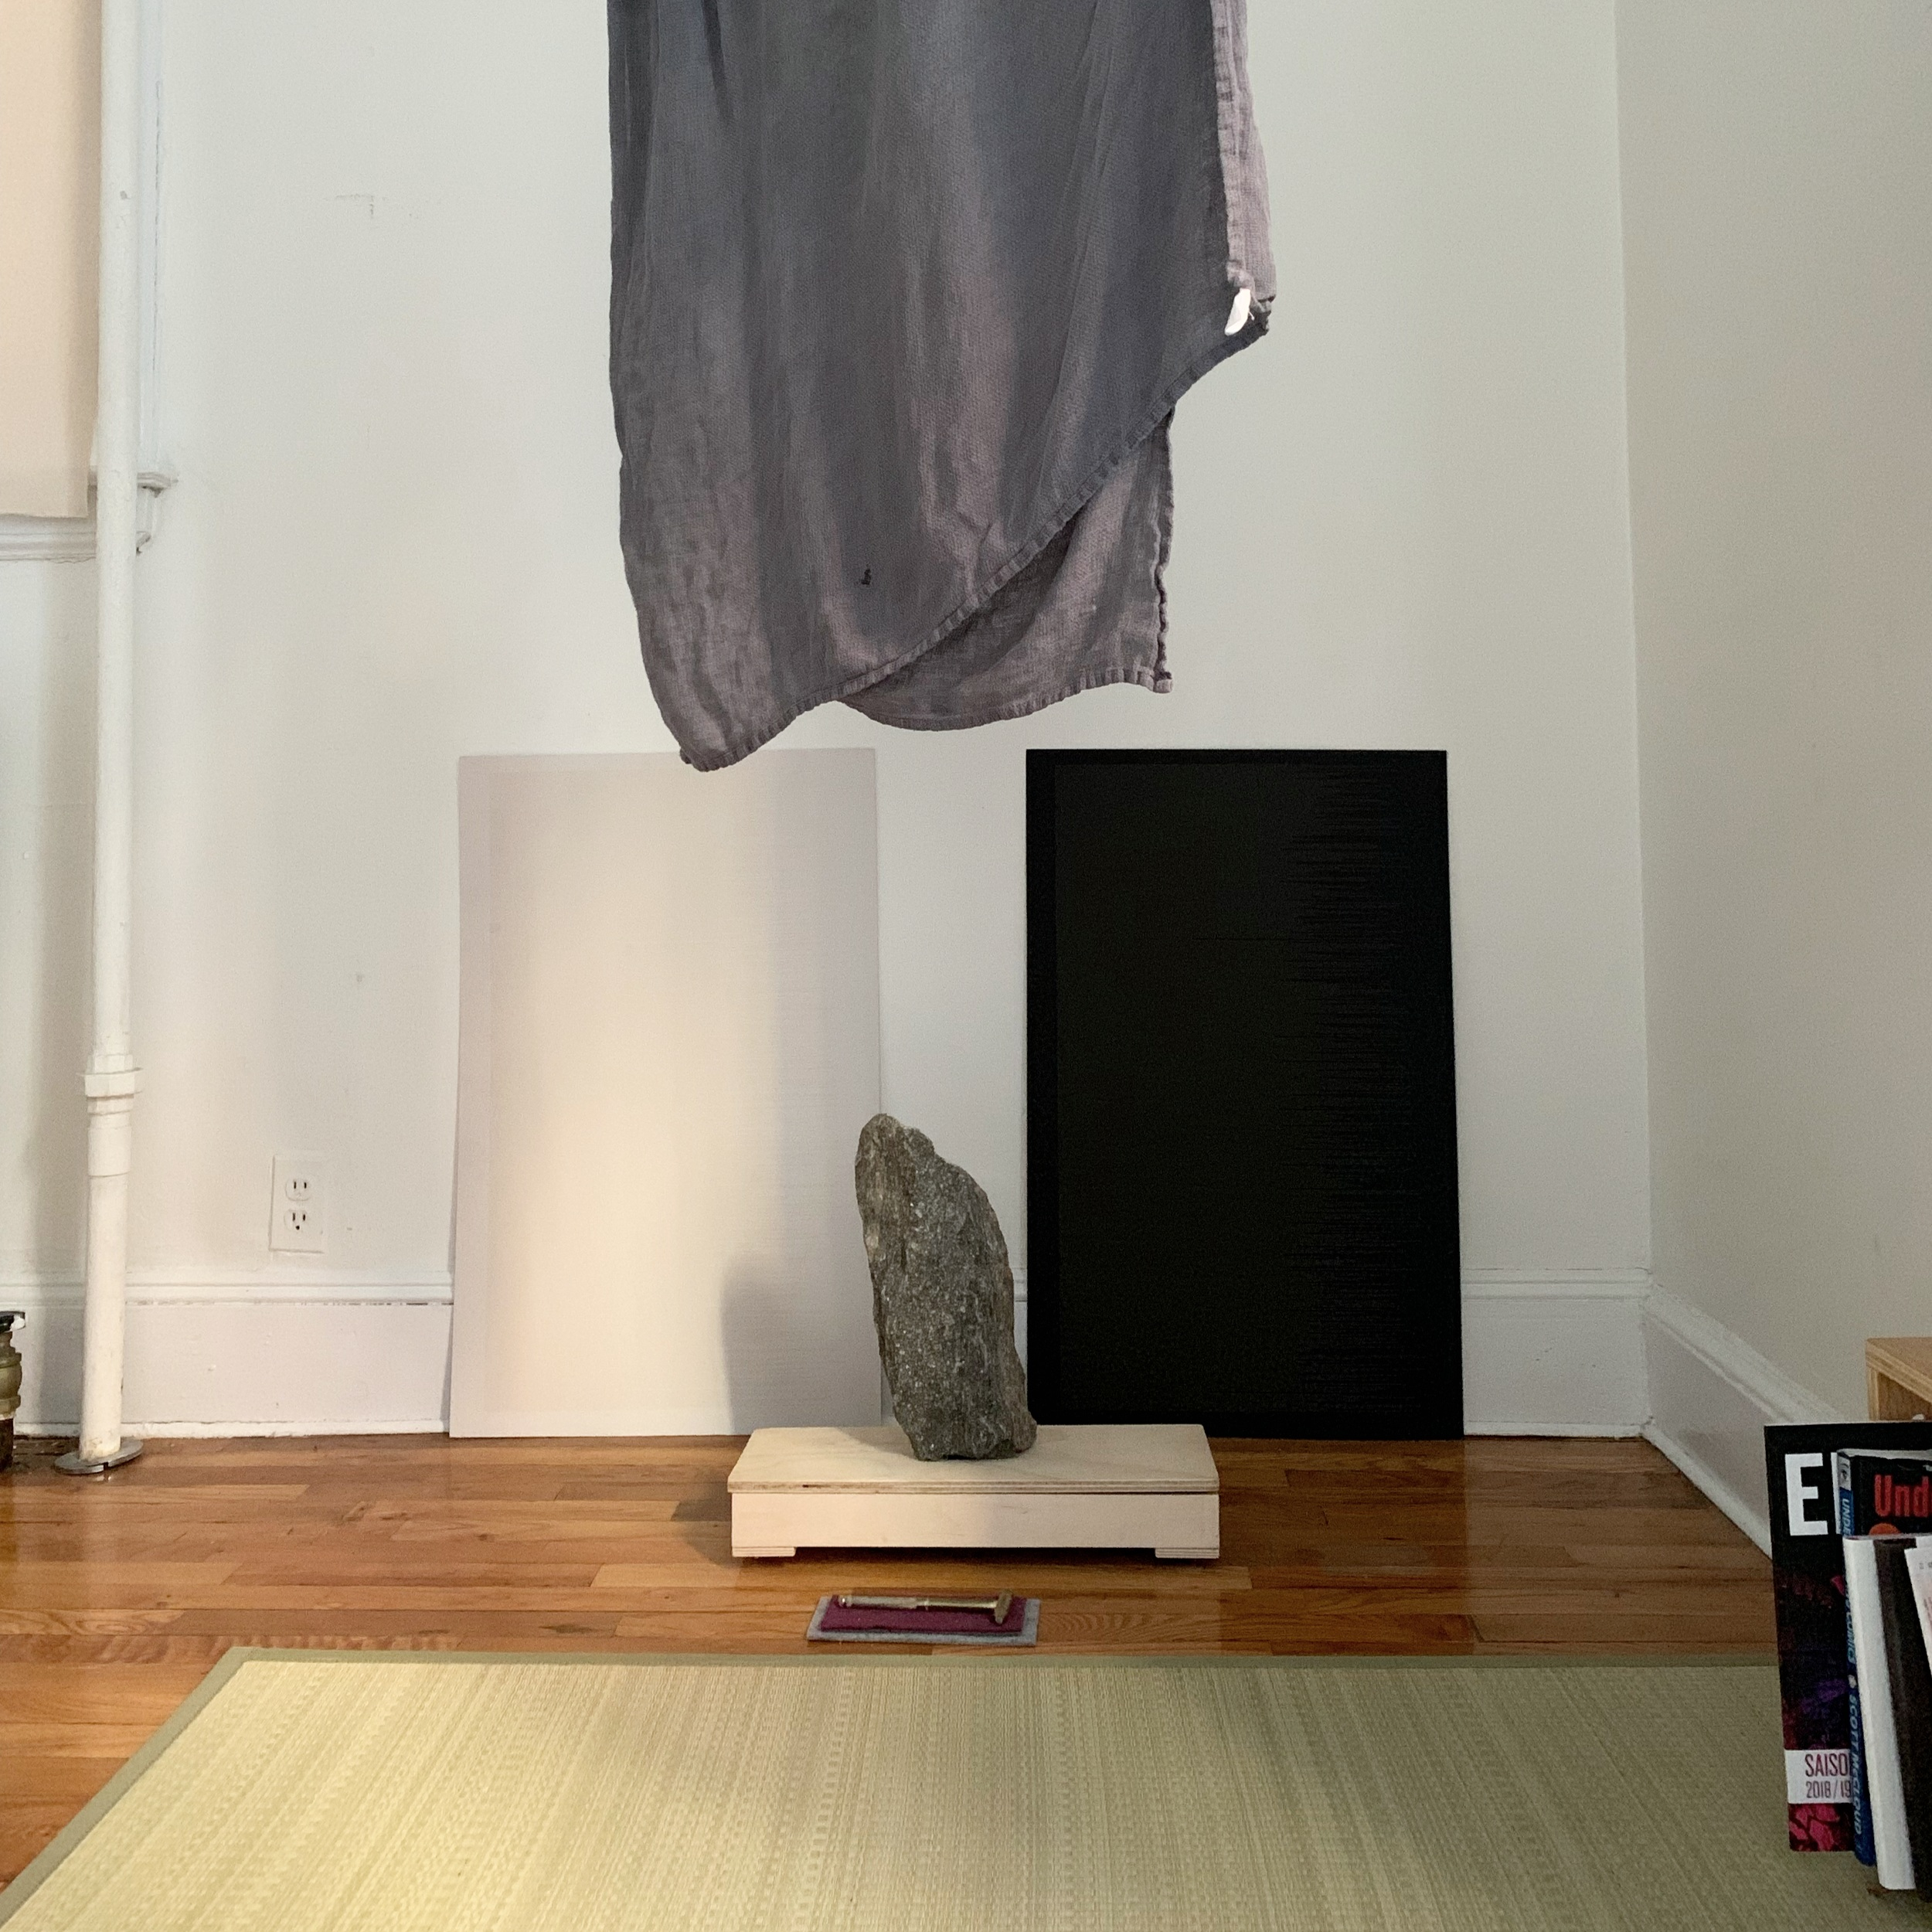 setup at my home as interactive sculpture for daily meditation